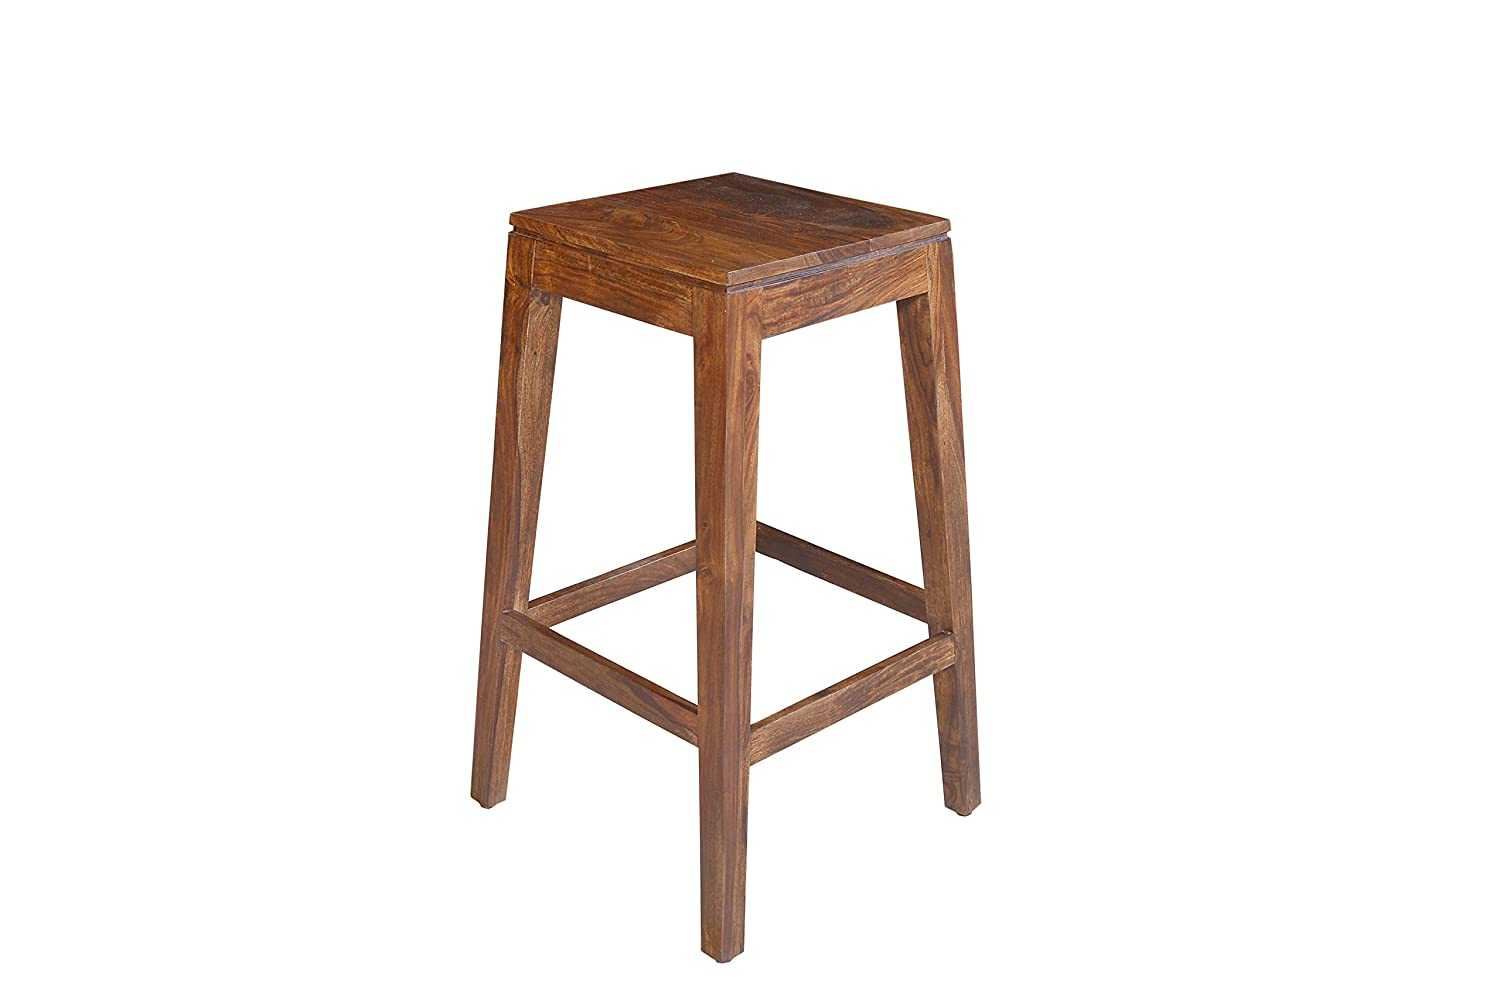 Solnib Bar Chair for Home Long Solid Wood Chair High Stool Natural Brown